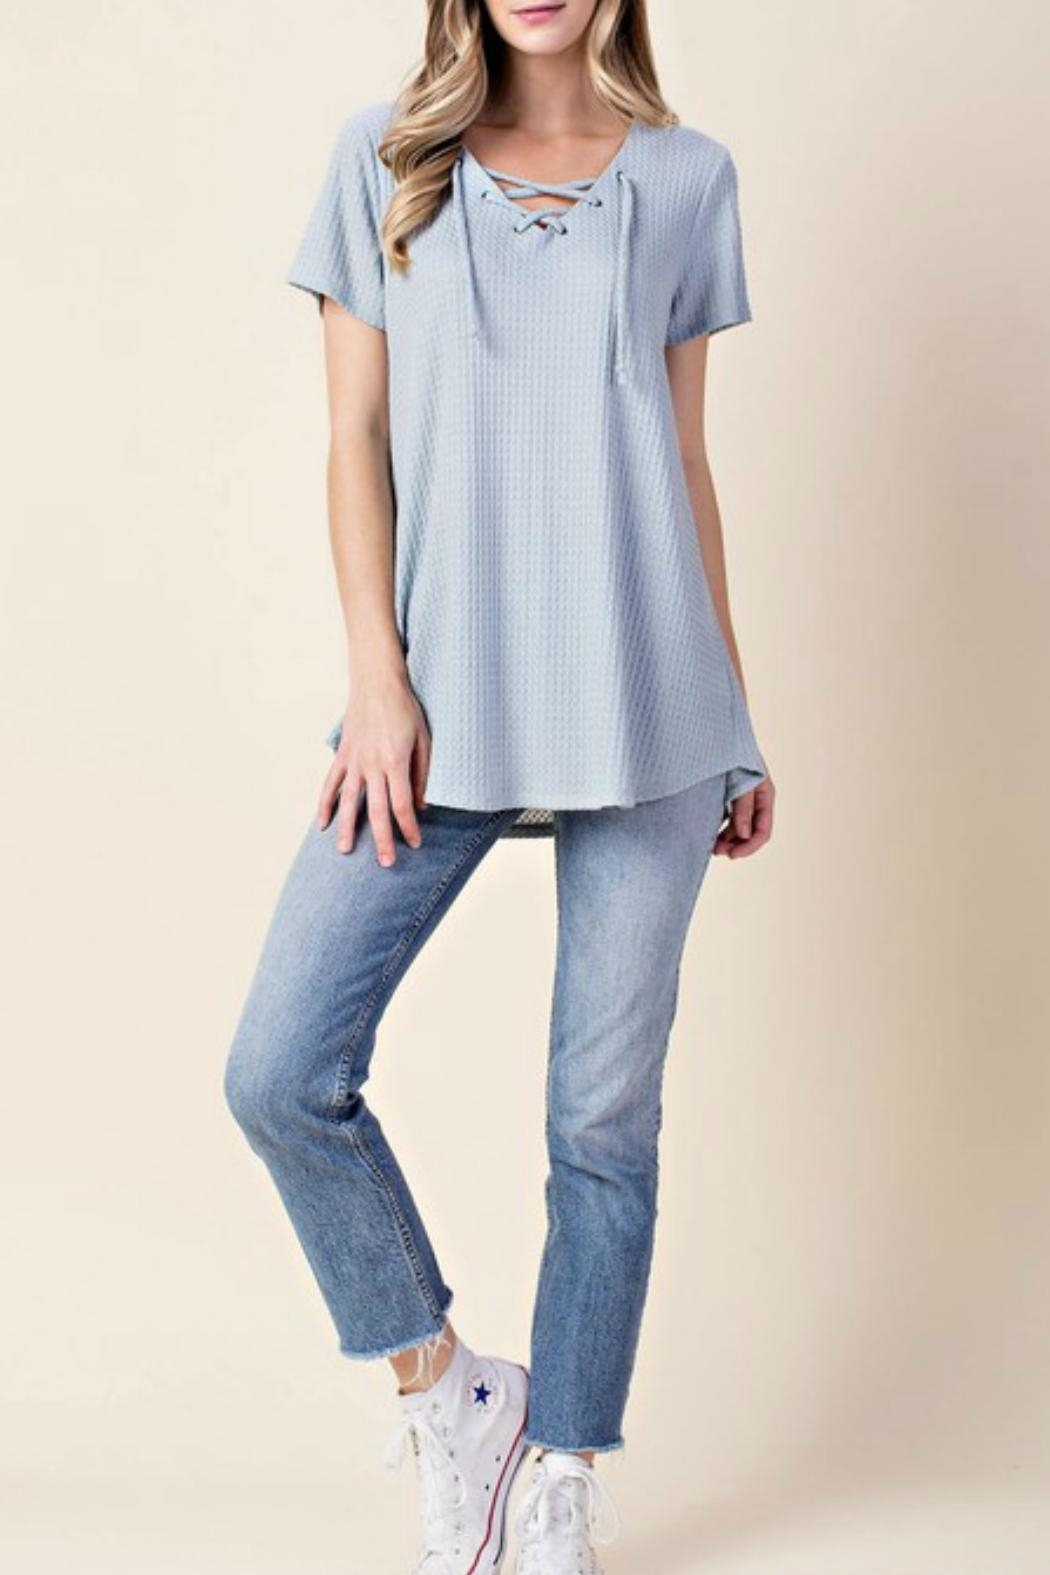 KORI AMERICA Lace Up Top - Front Cropped Image